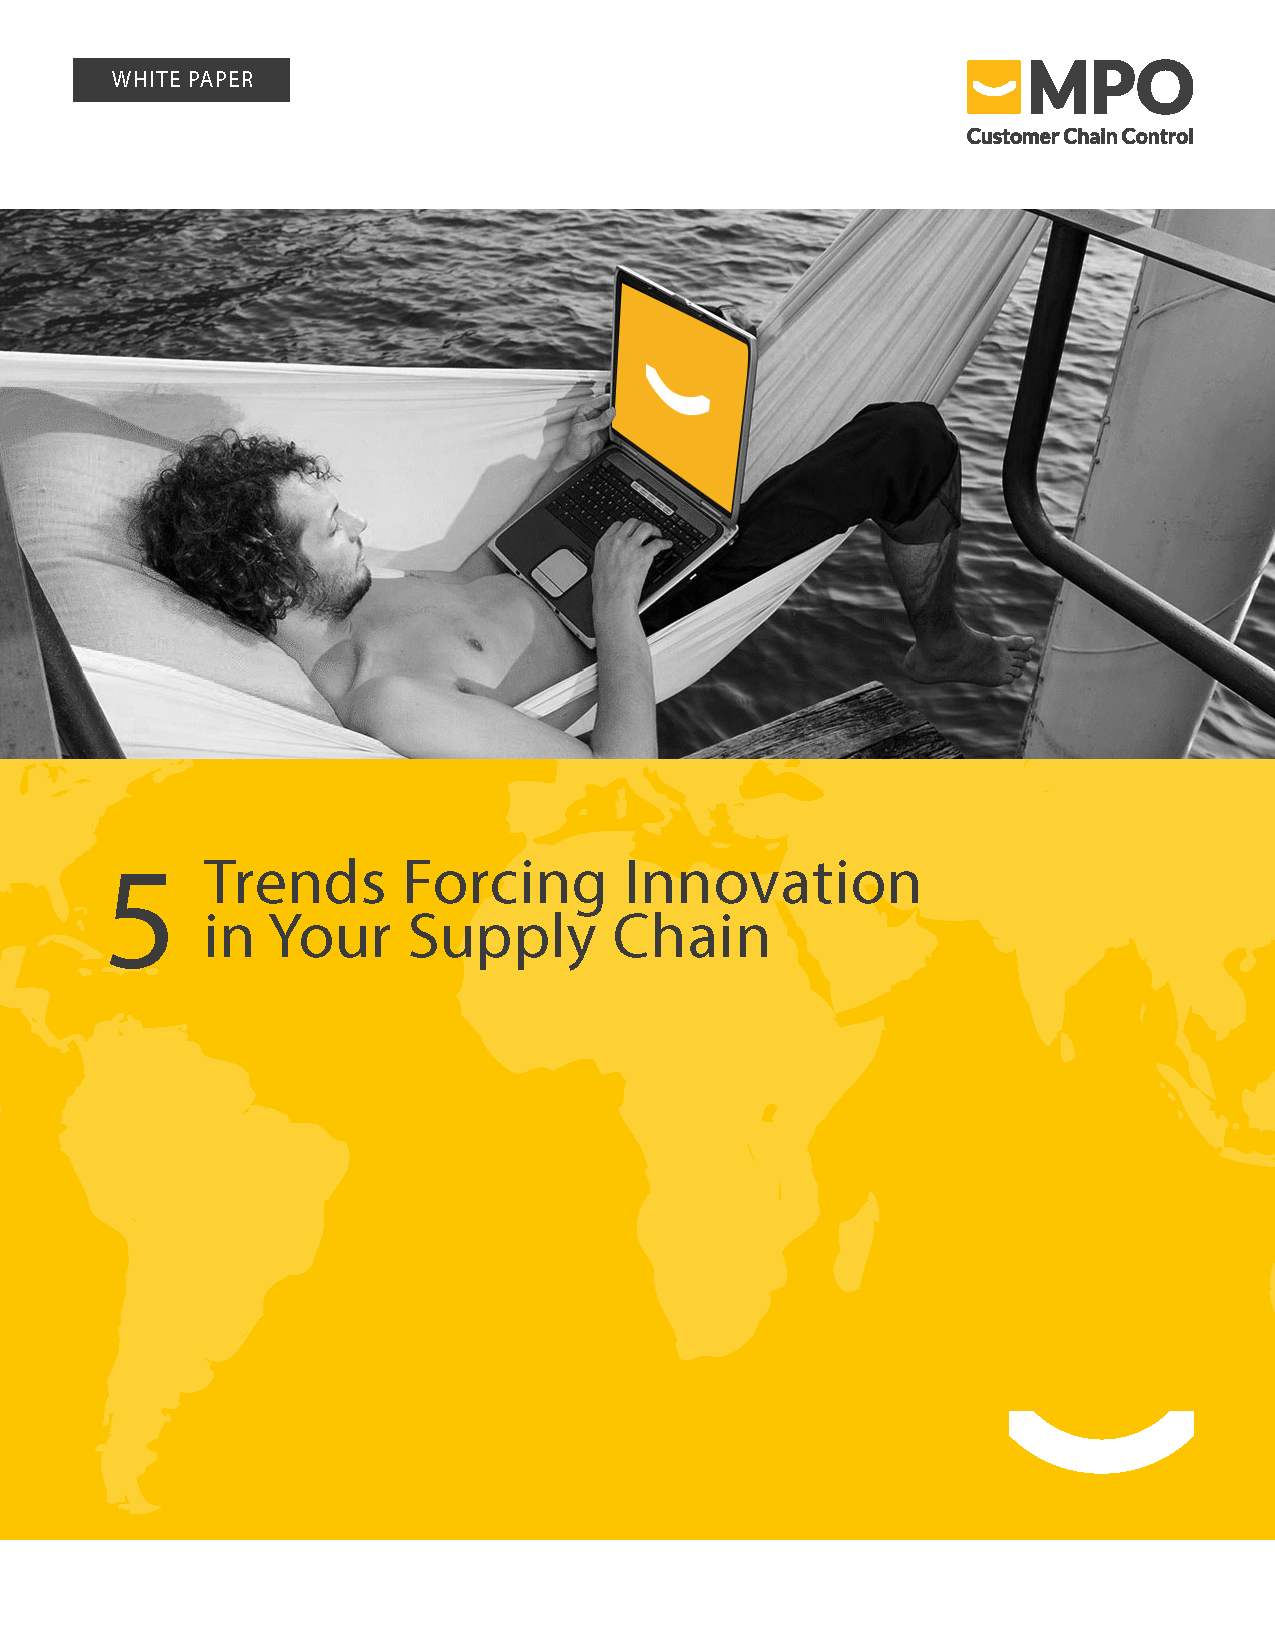 Five-Trends-Forcing-Innovation-Supply-Chain_CP.png